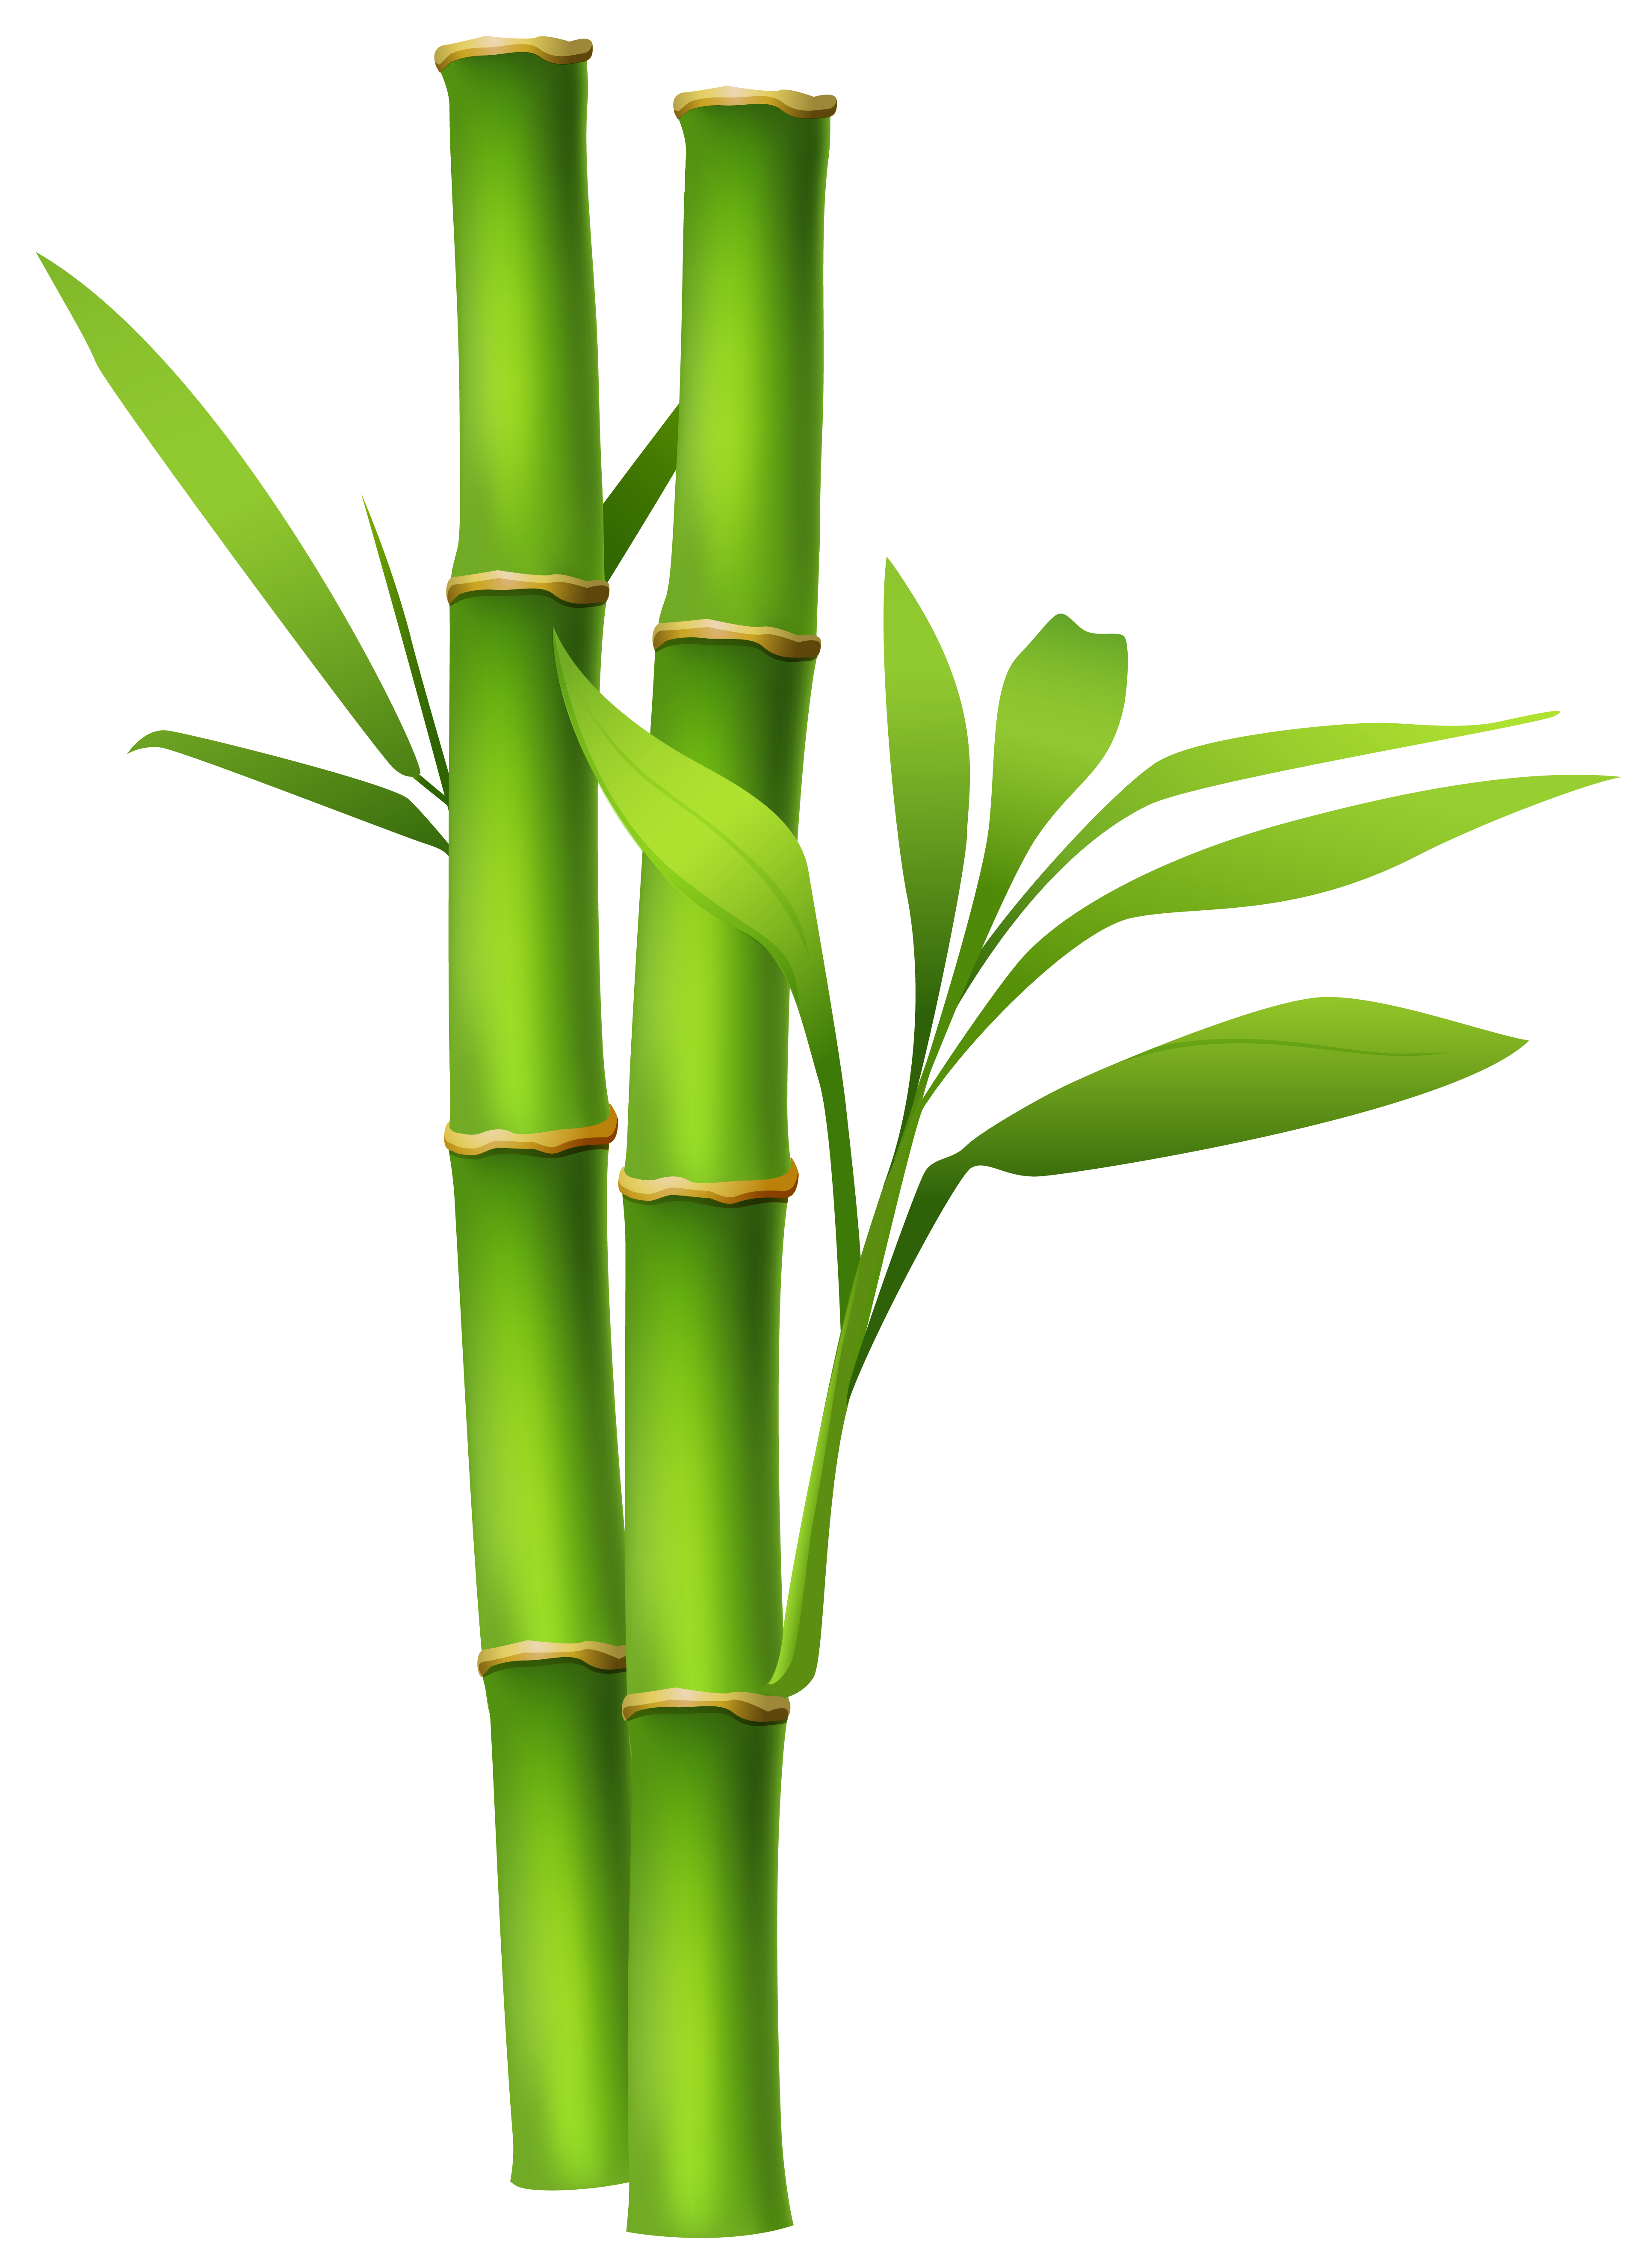 Bamboo clipart #5, Download drawings